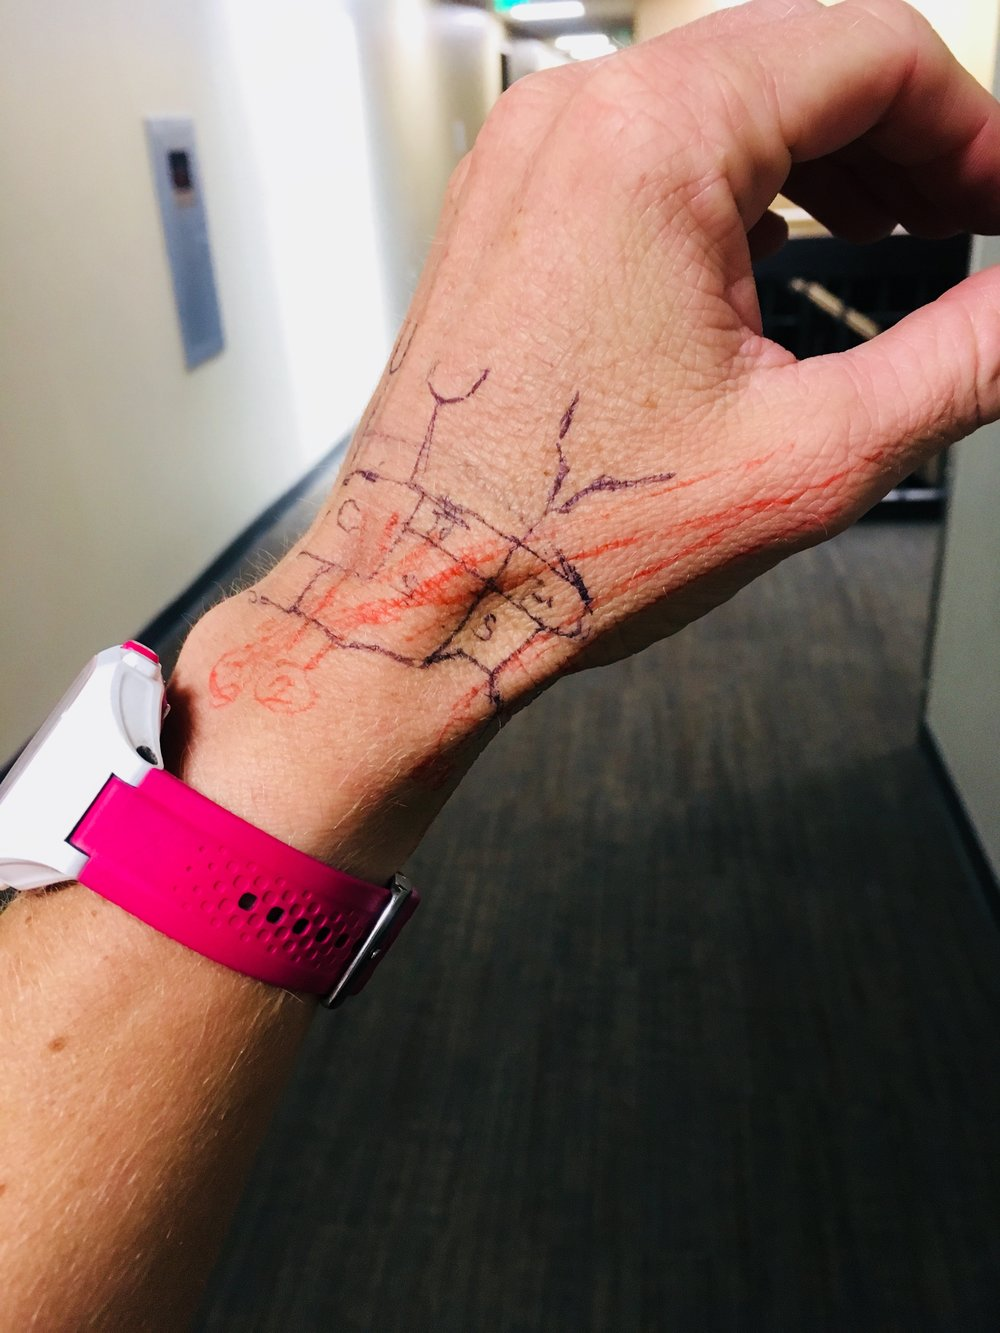 Climbing Injury Prevention: Wrist & Thumb - What you need to know from your physical therapists at Langford.